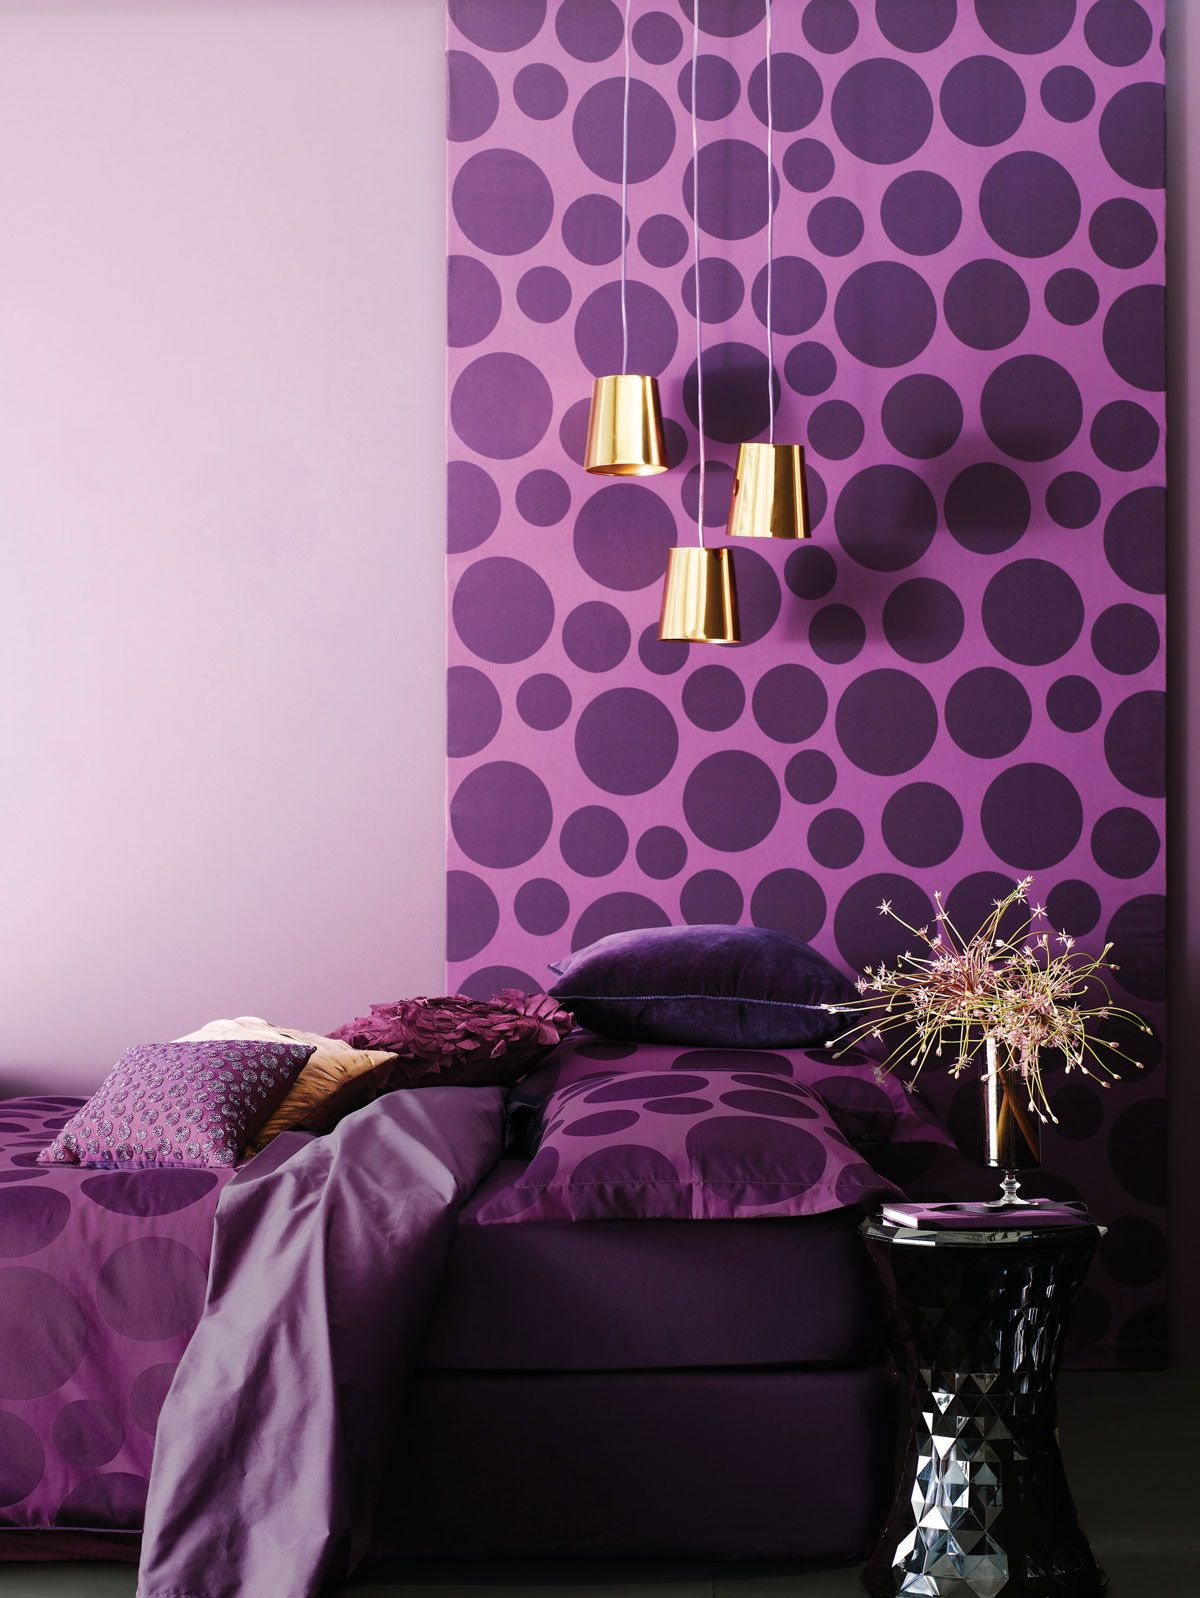 Diy Change The Look Of Your Home With Wallpapers Modern Wallpaper Purple Wall Decor Purple Bedrooms Purple Bedroom Design Purple bedroom wallpaper ideas